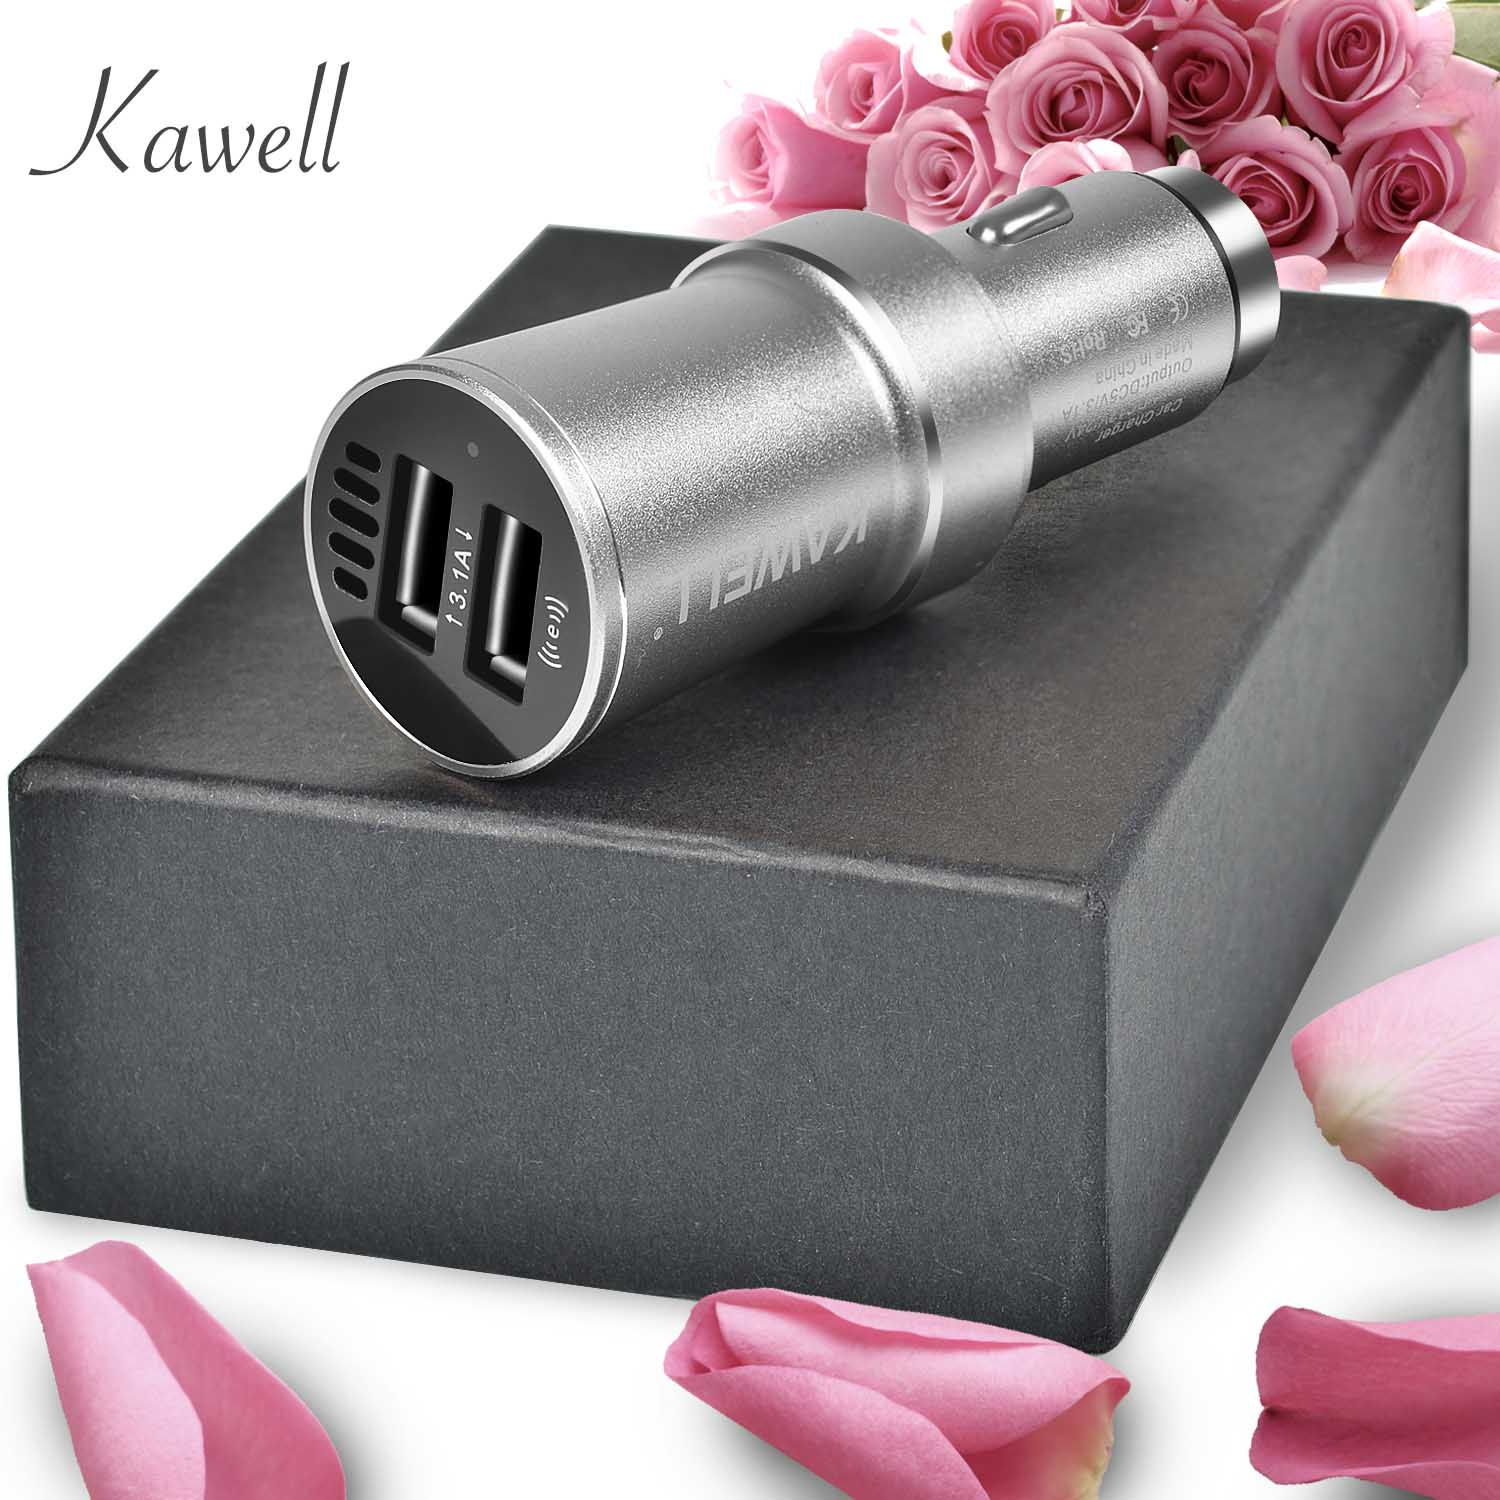 KAWELL USB Car Charger multi-function Dual Port Cigarette Charger with Air purification and Emergency harmmer function (Silver)